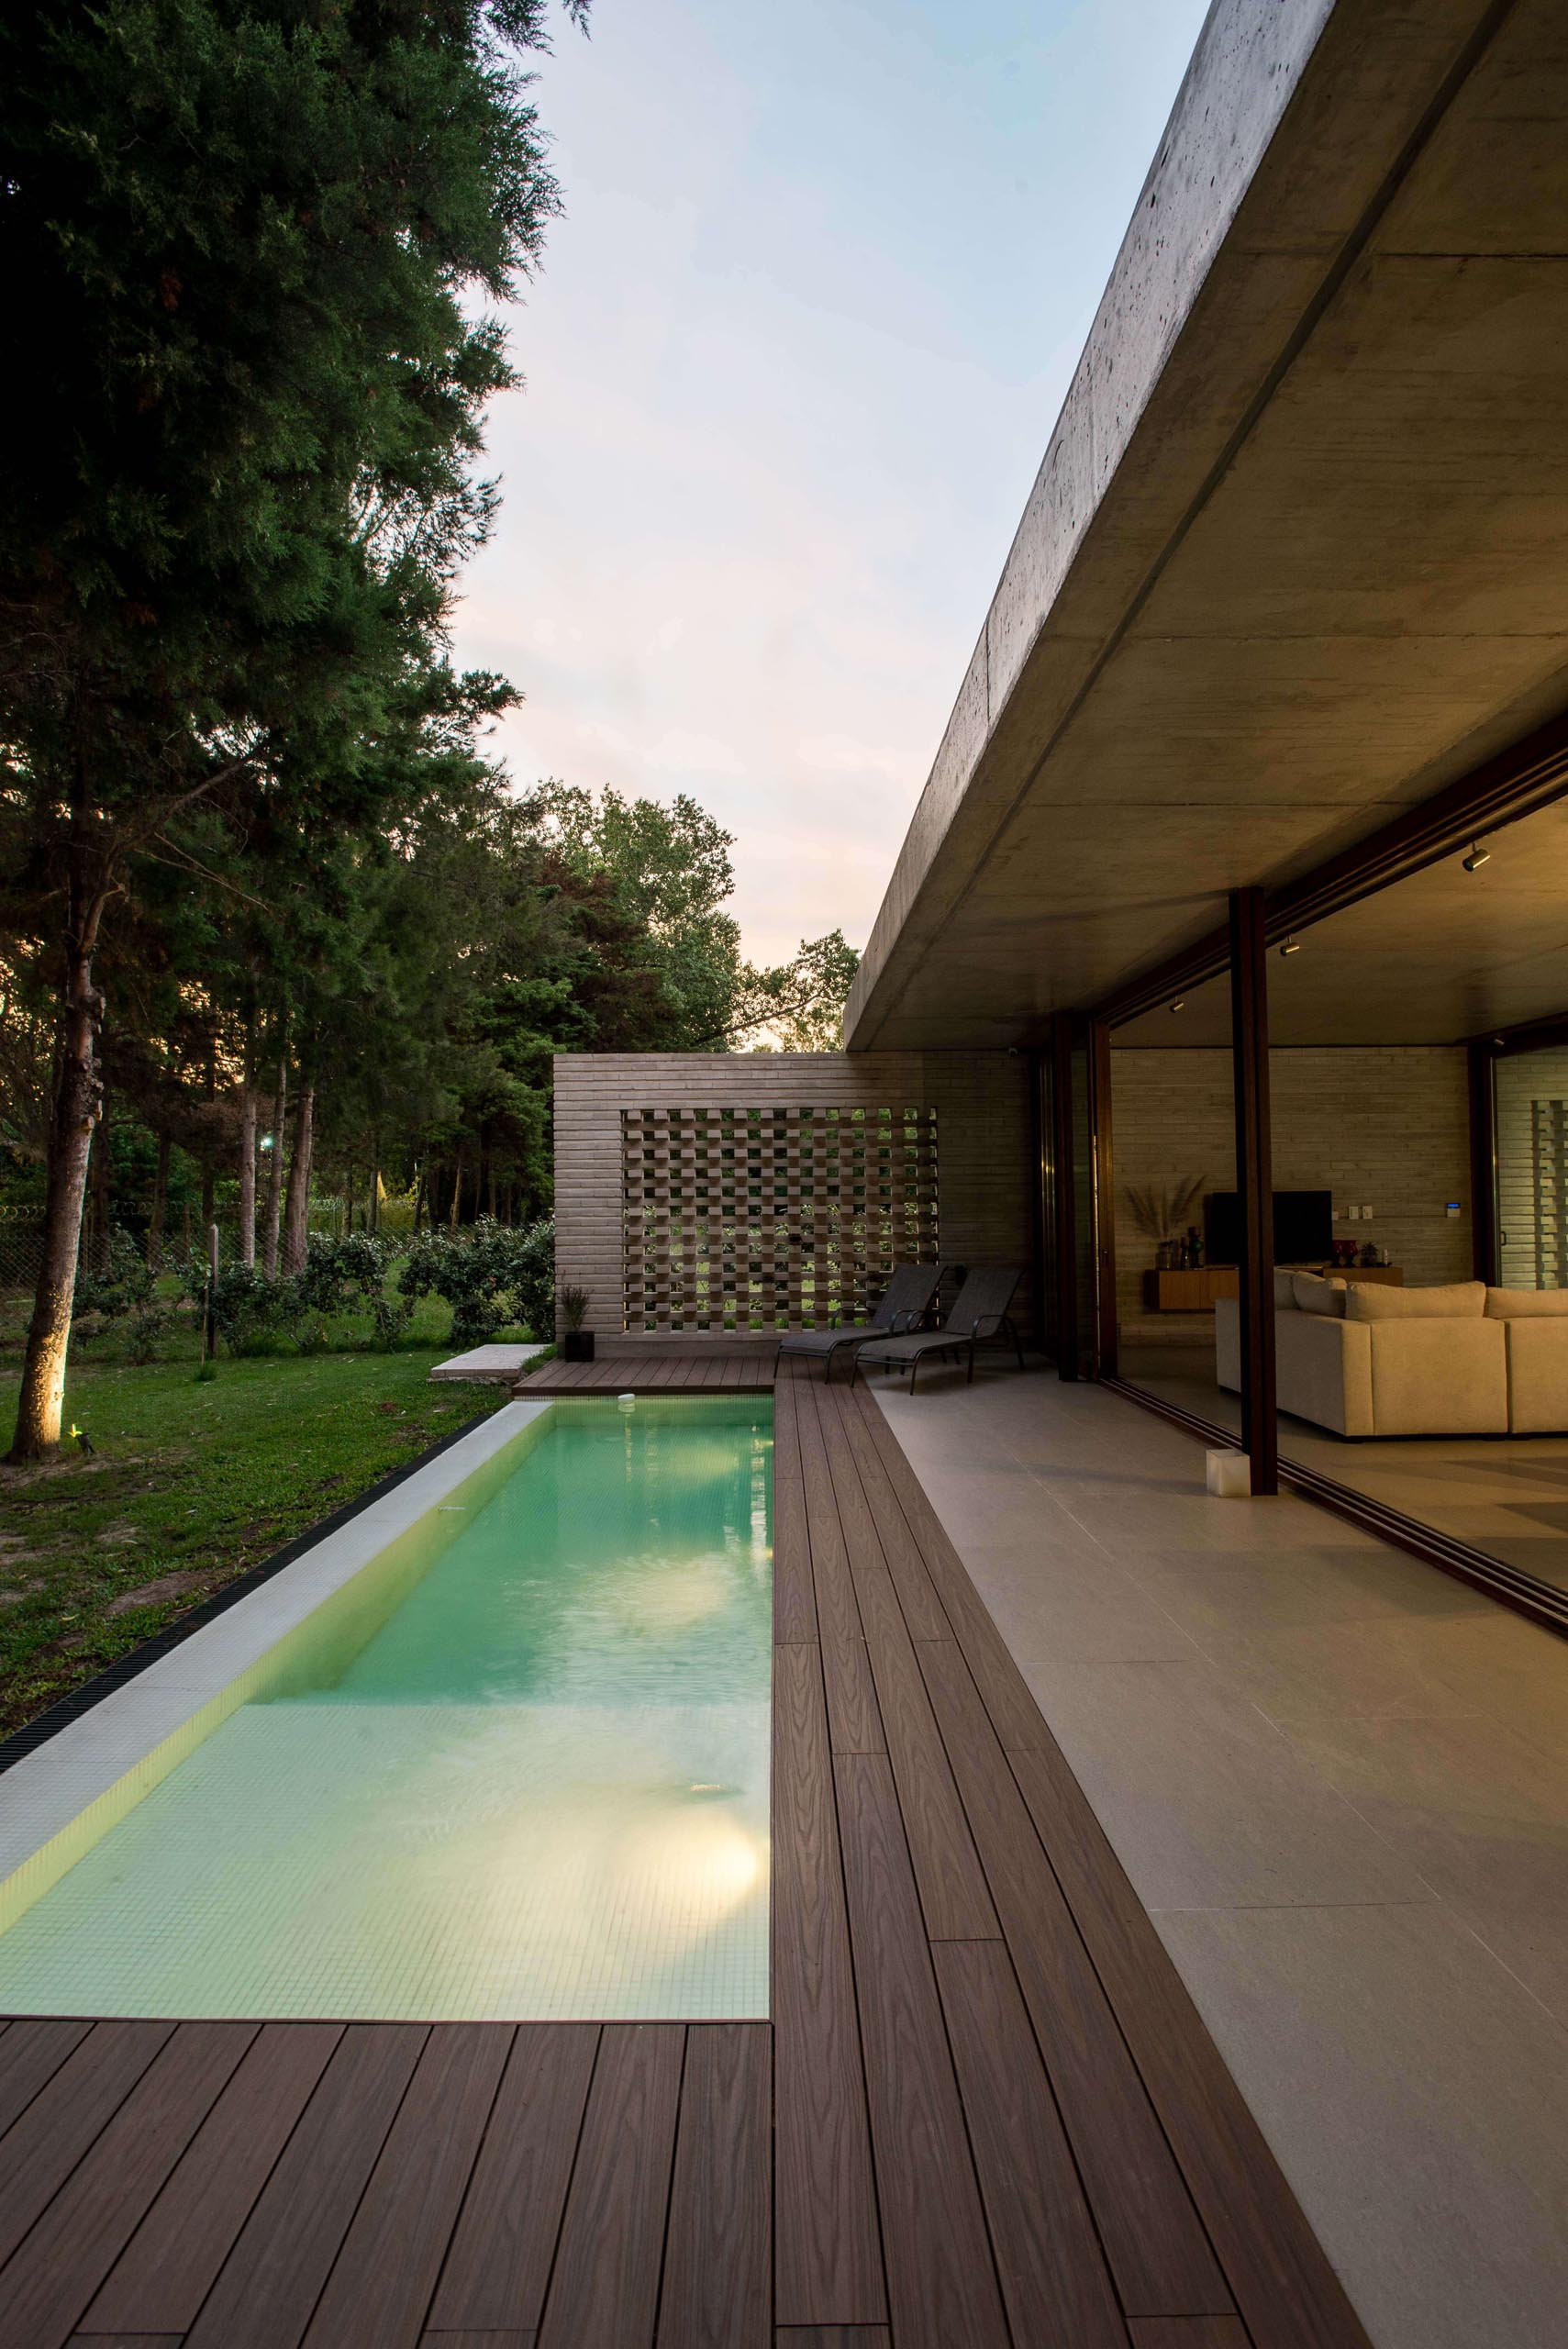 A modern concrete home with sliding glass walls and a swimming pool.